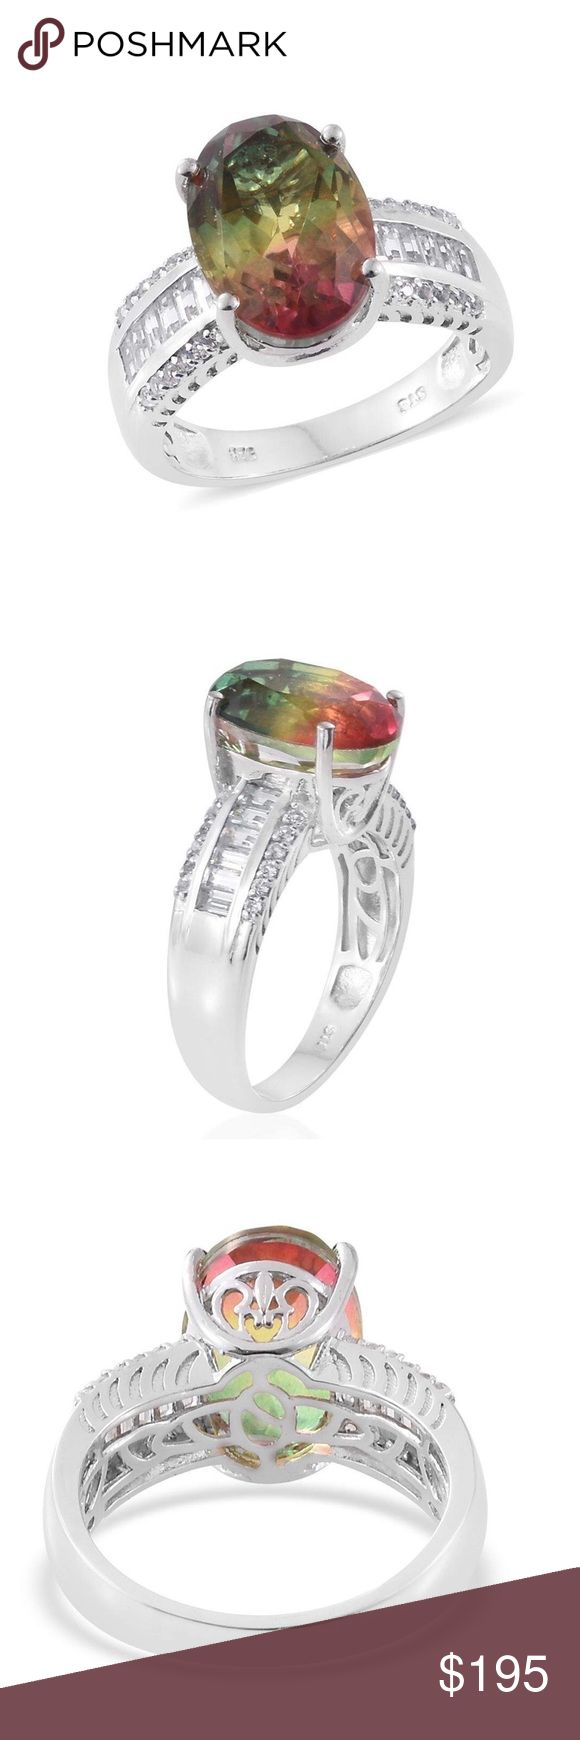 Rainbow Genesis Quartz, White Topaz Platinum 925SS Embellish your everyday look with this rainbow quartz ring. Accented with white topaz, the piece is set in platinum over 925 sterling silver. Pair it with any outfit.  Timeless of a look that will never go unnoticed. Total Stone Weight (Carat) 8.260 Gemstone 1 Rainbow Quartz Oval 14x10 Faceted Gemstone Count 1 1 7.3 Gemstone 2 White Topaz Baguette 3x1.5 Faceted Gemstone Count 2 12 Gemstone Weight 2 0.720 Gemstone 3 White Topaz Round 1.2…